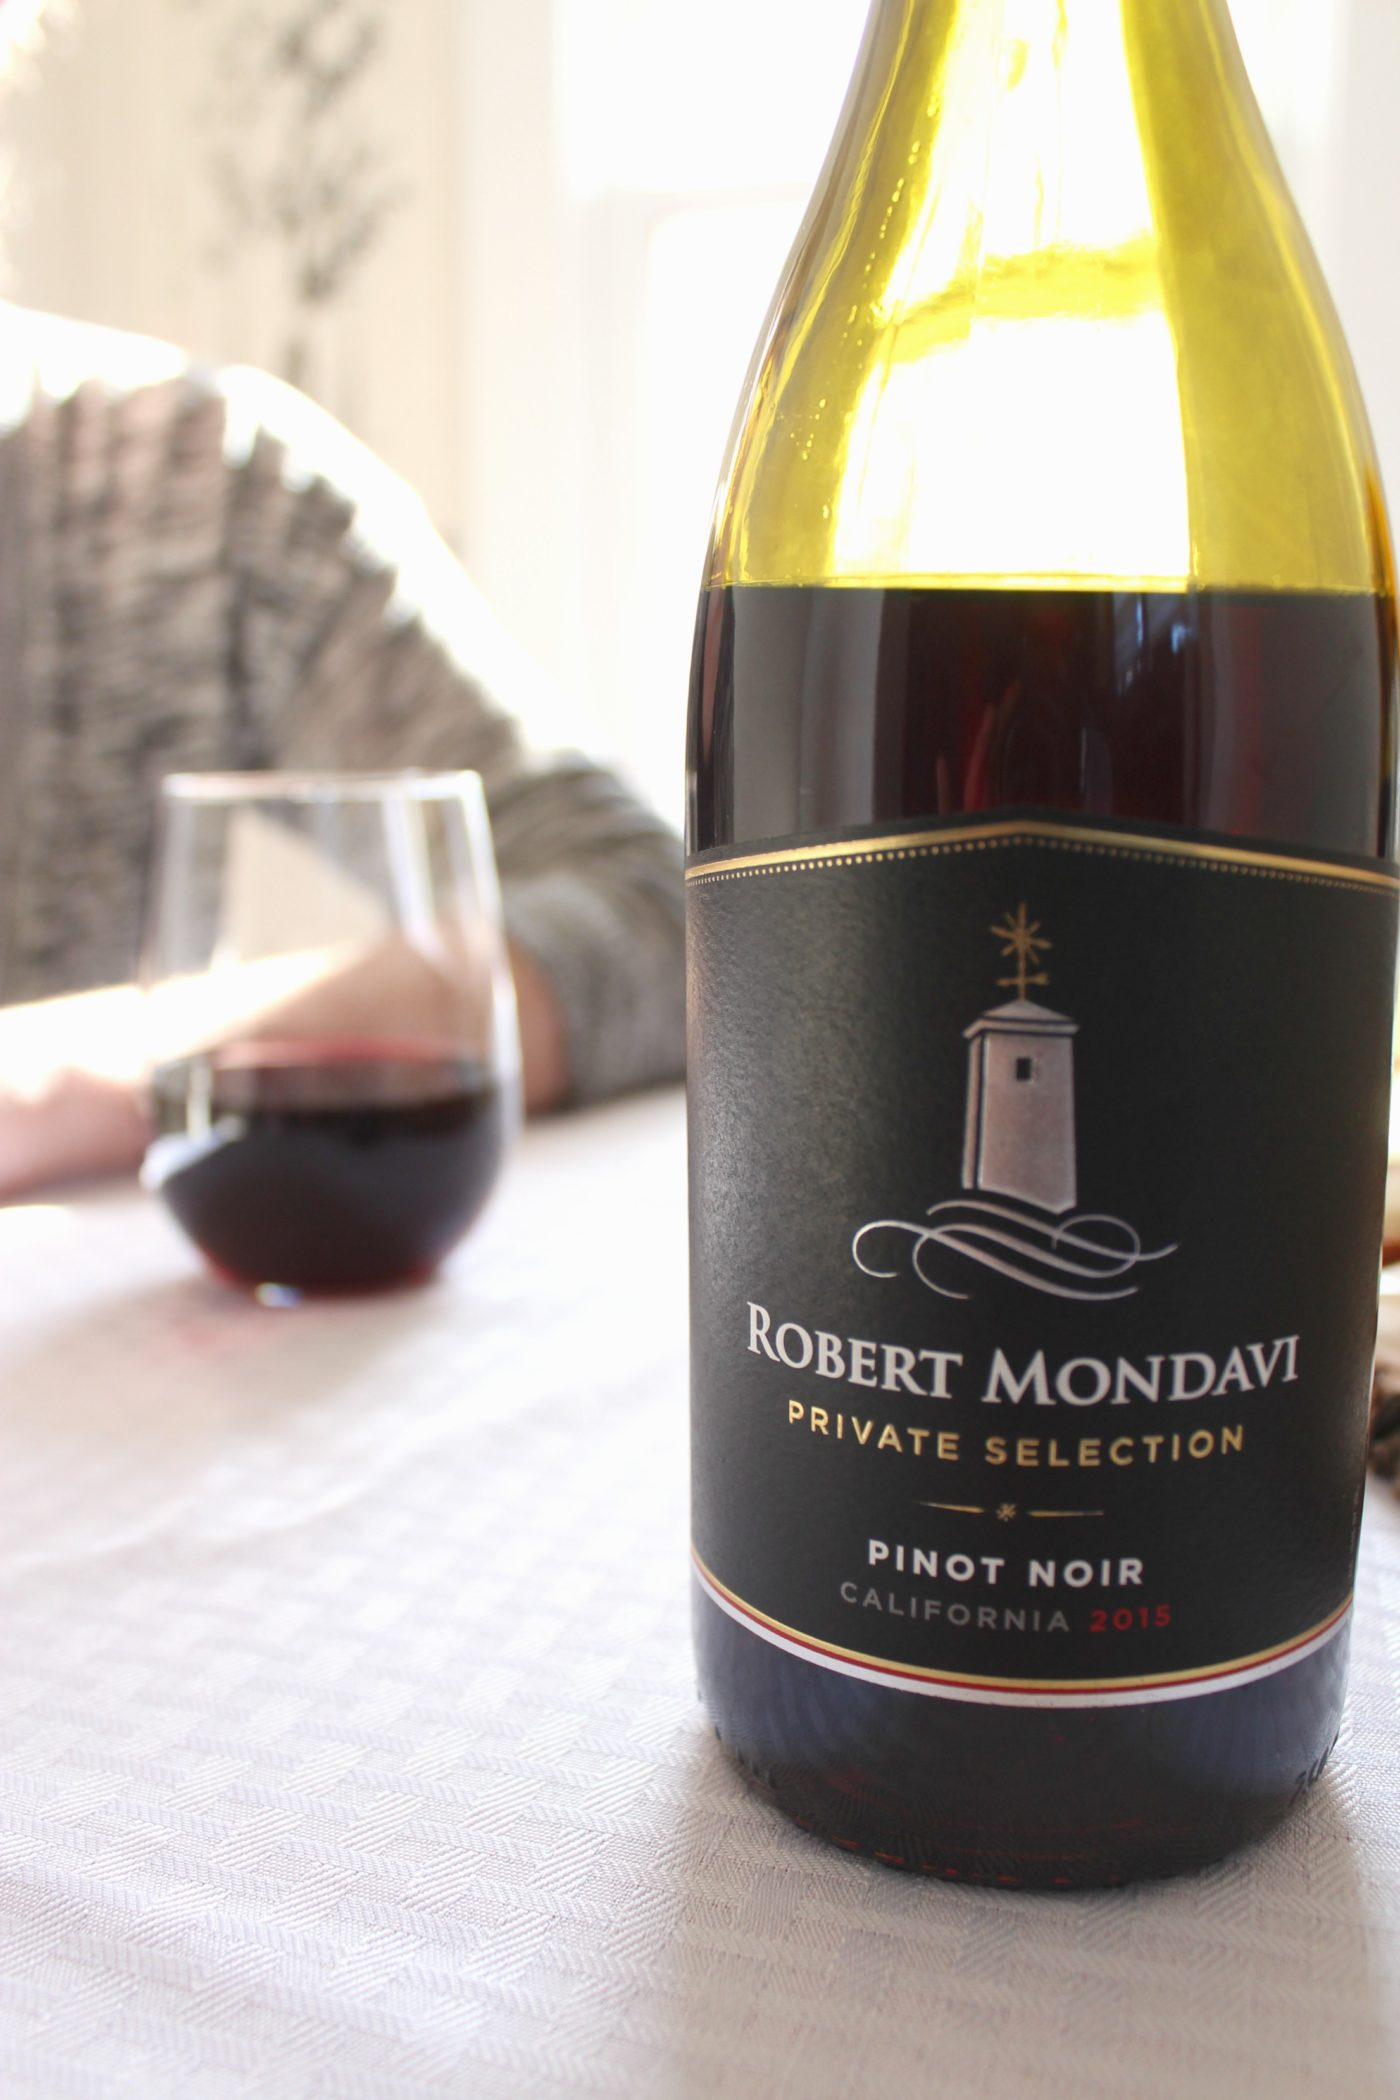 Robert Mondavi Private Selection Pinot Noir.